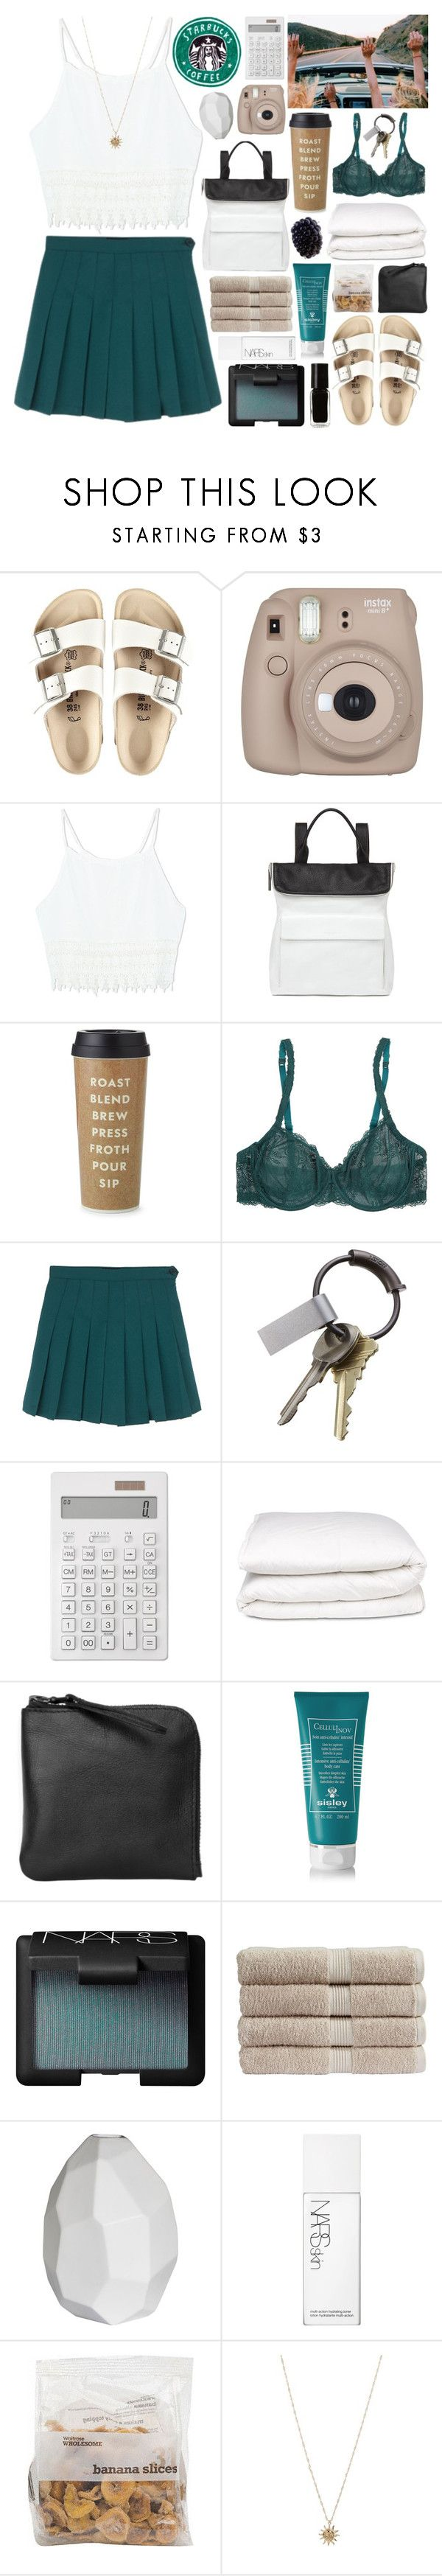 """""""Temporary Escape"""" by lucidmoon ❤ liked on Polyvore featuring moda, Birkenstock, Whistles, Kate Spade, Cosabella, CB2, Muji, Selfridges, Xenab Lone i Sisley - Paris"""